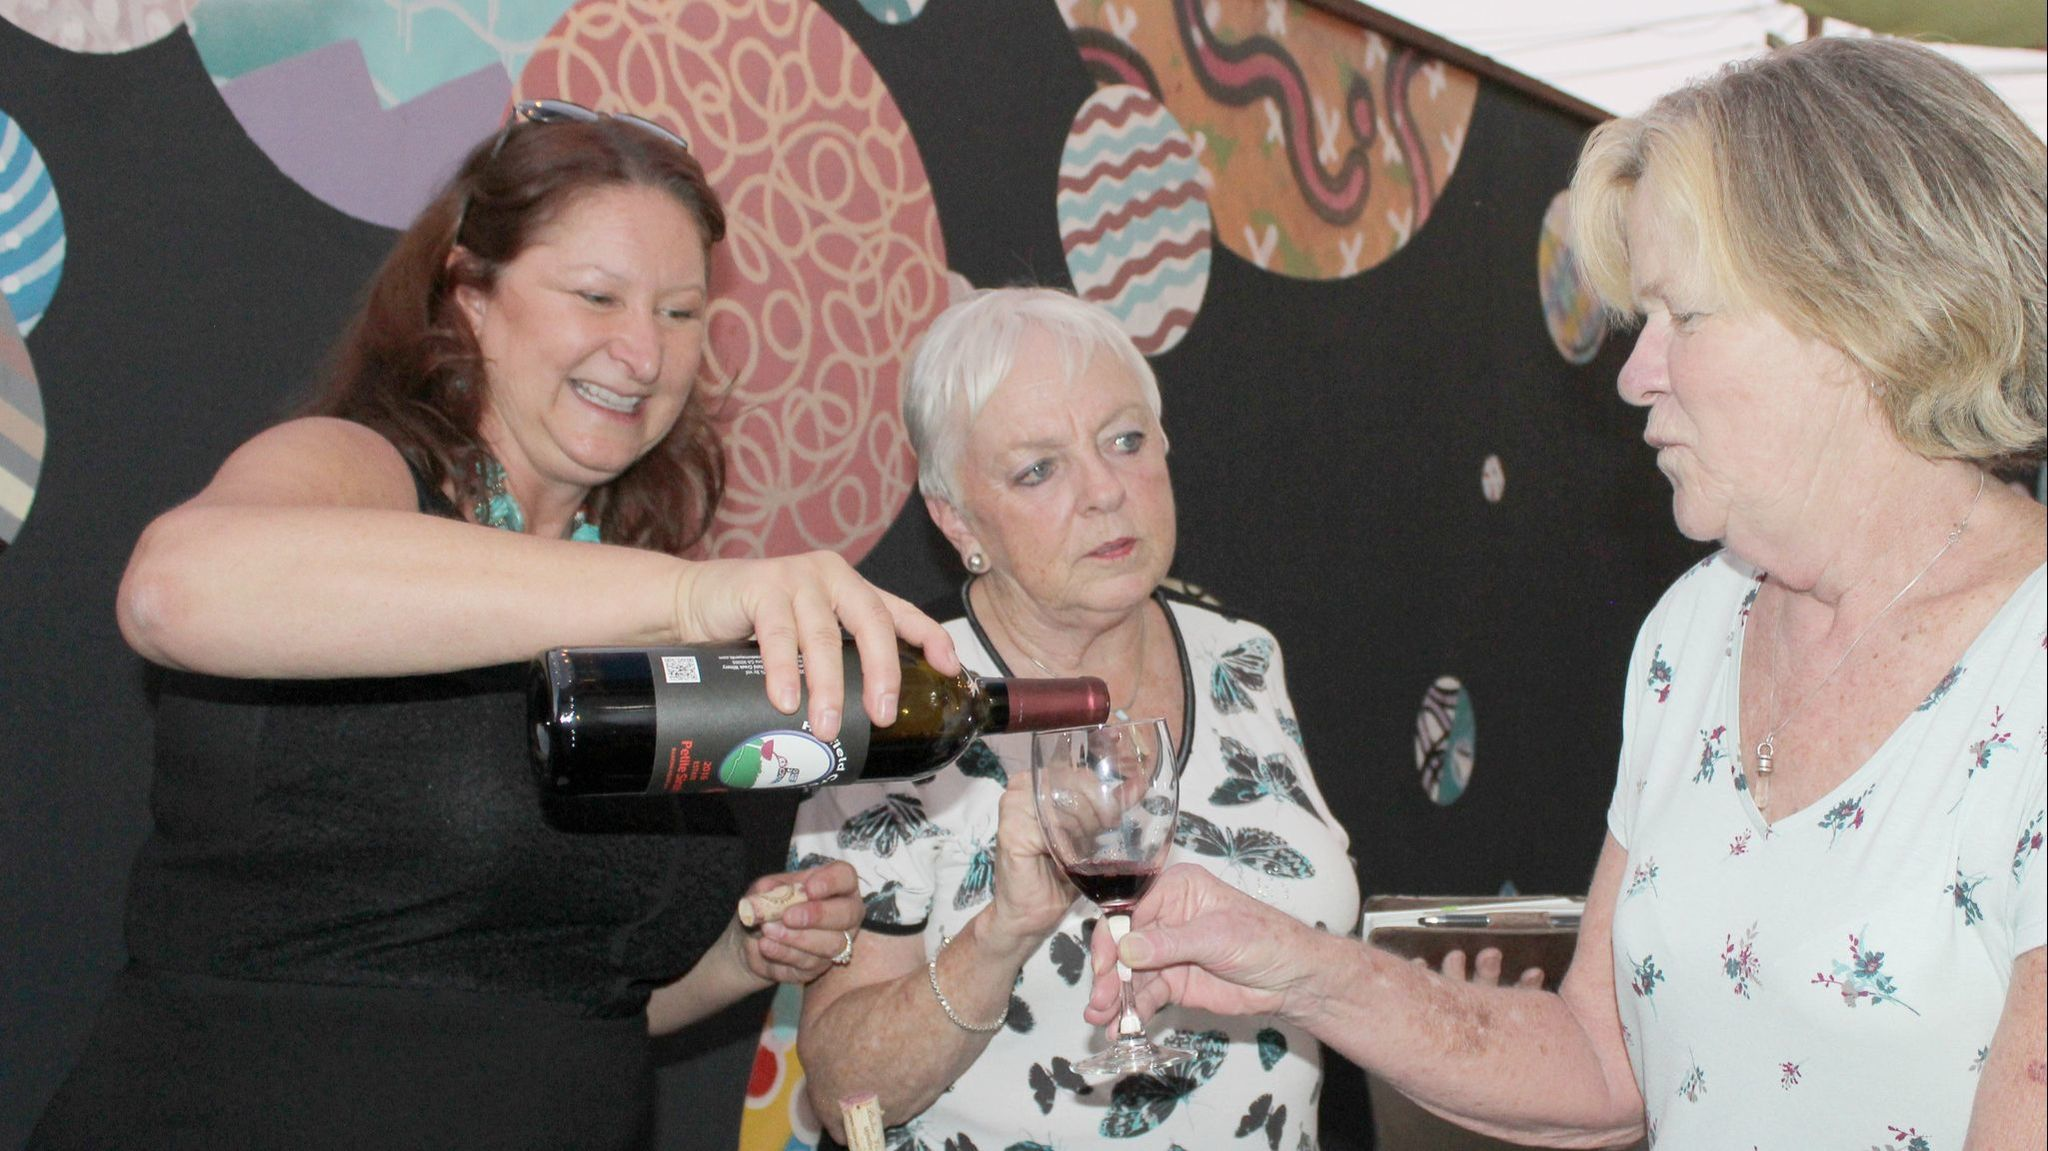 Elaine Lyttleton, center, co-chair of the 6th Annual Art & Wine Festival, talks with Vicky James of Ramona as Teri Kerns of Ramona Ranch Vineyard & Winery pours a glass of wine.